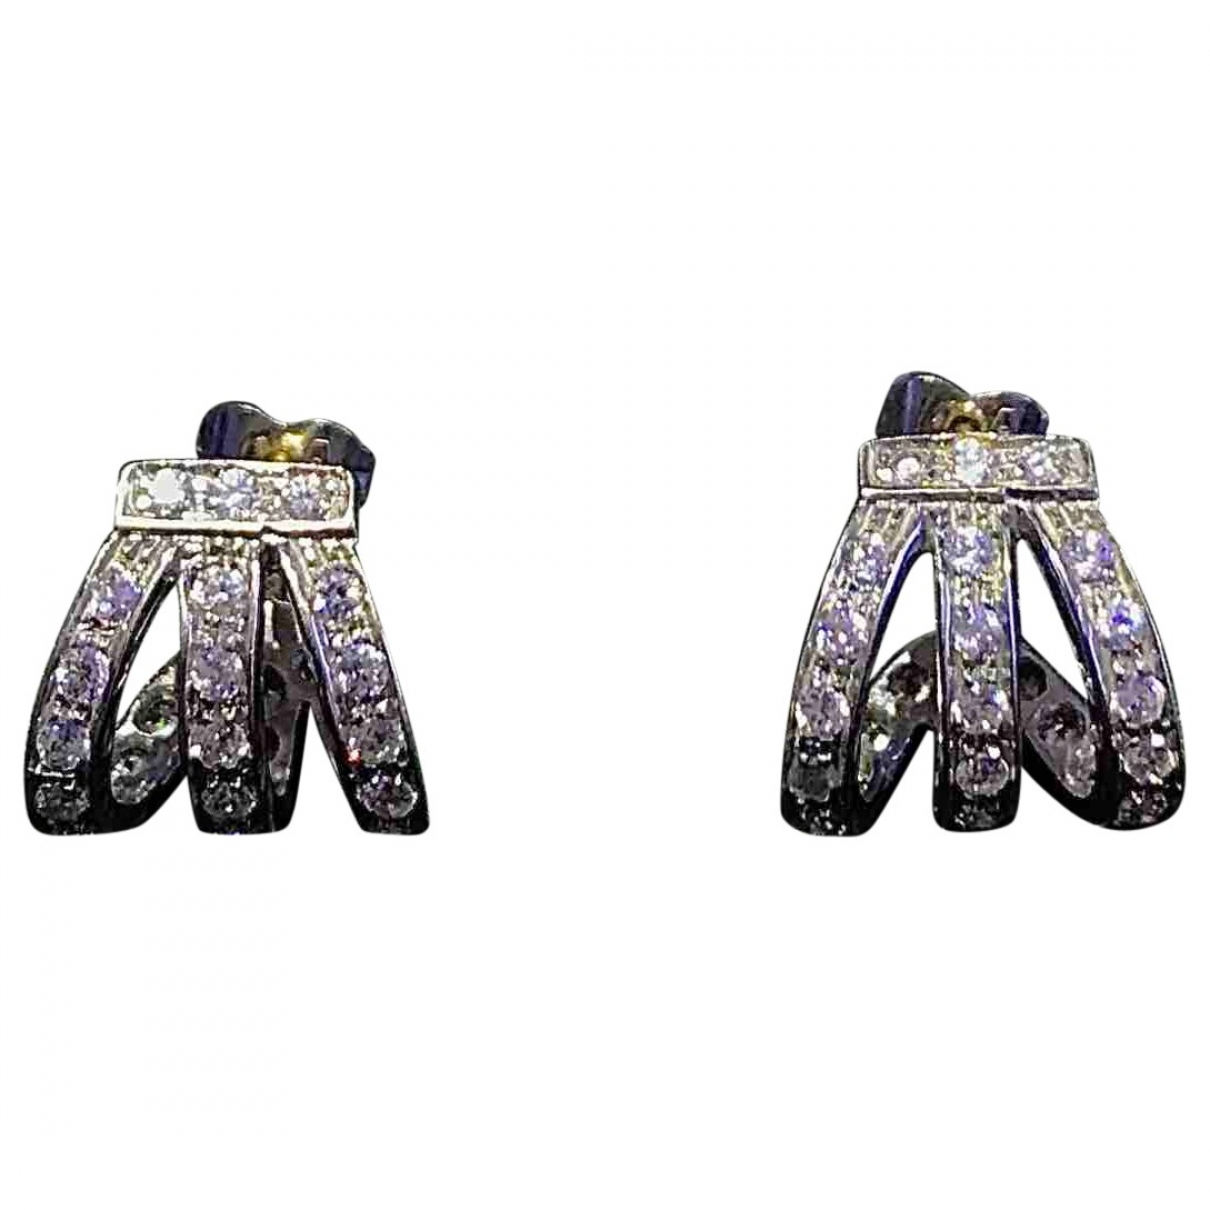 Non Signe / Unsigned Art Deco OhrRing in  Weiss Weissgold